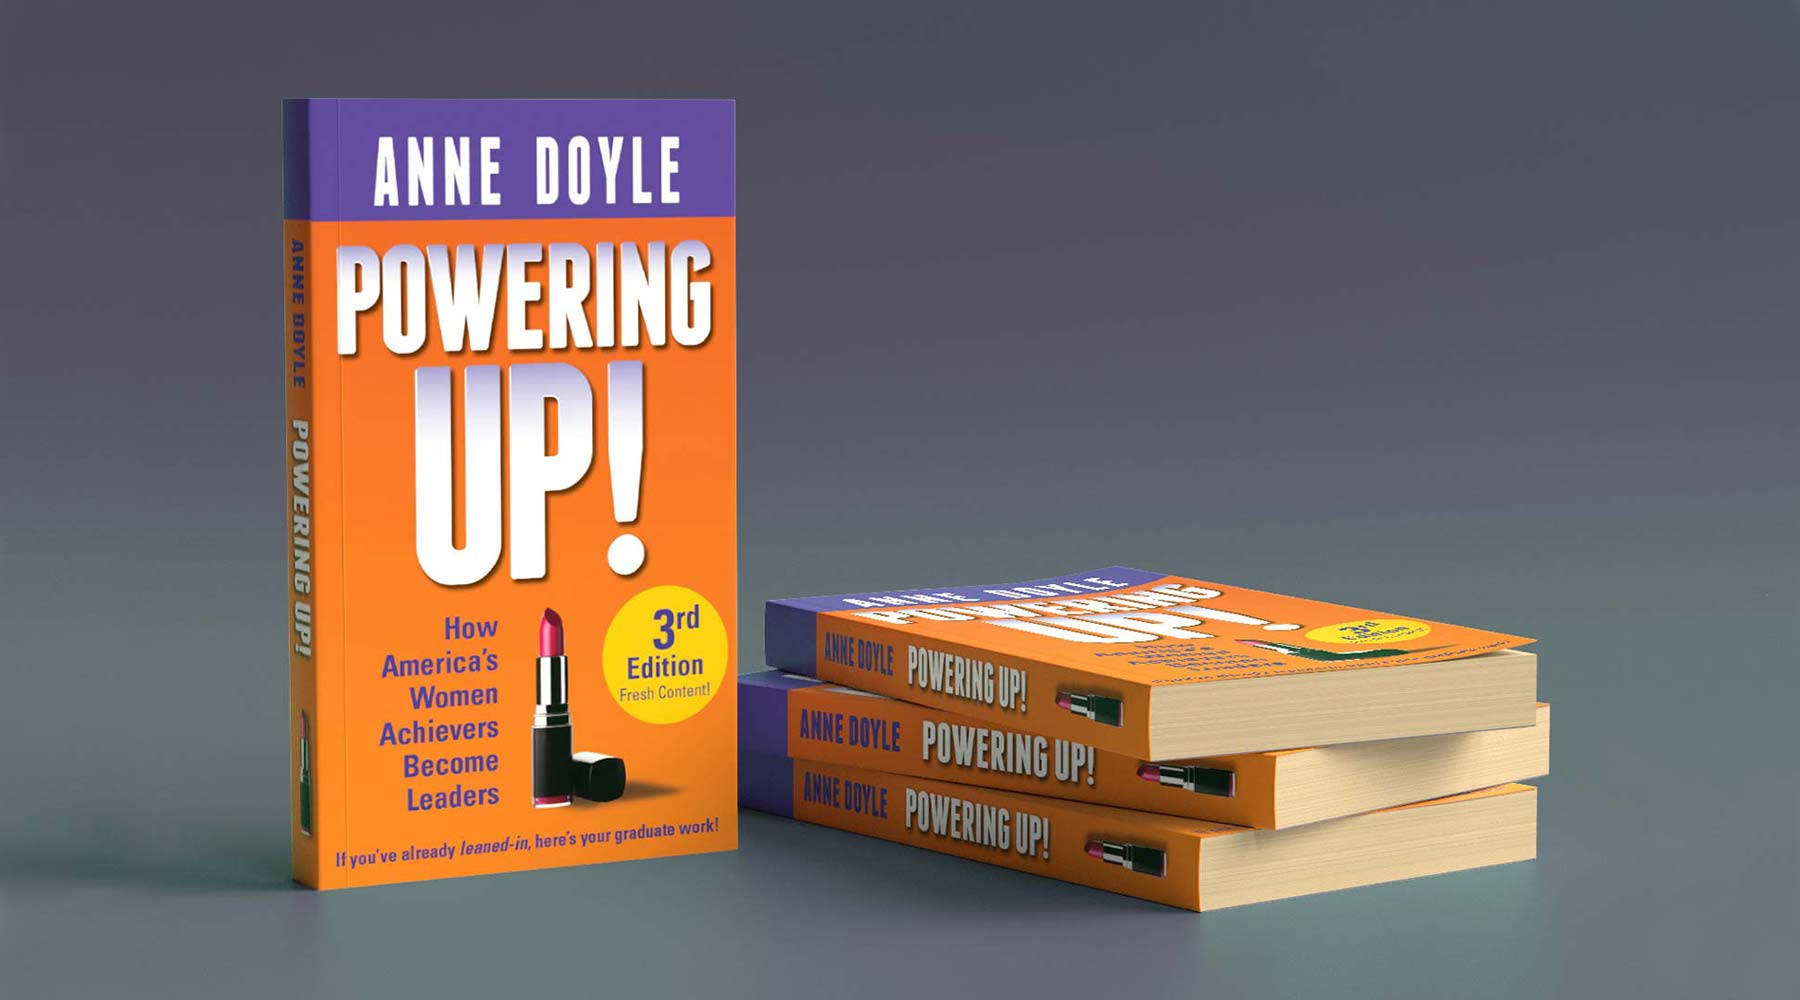 Powering Up! by Anne Doyle